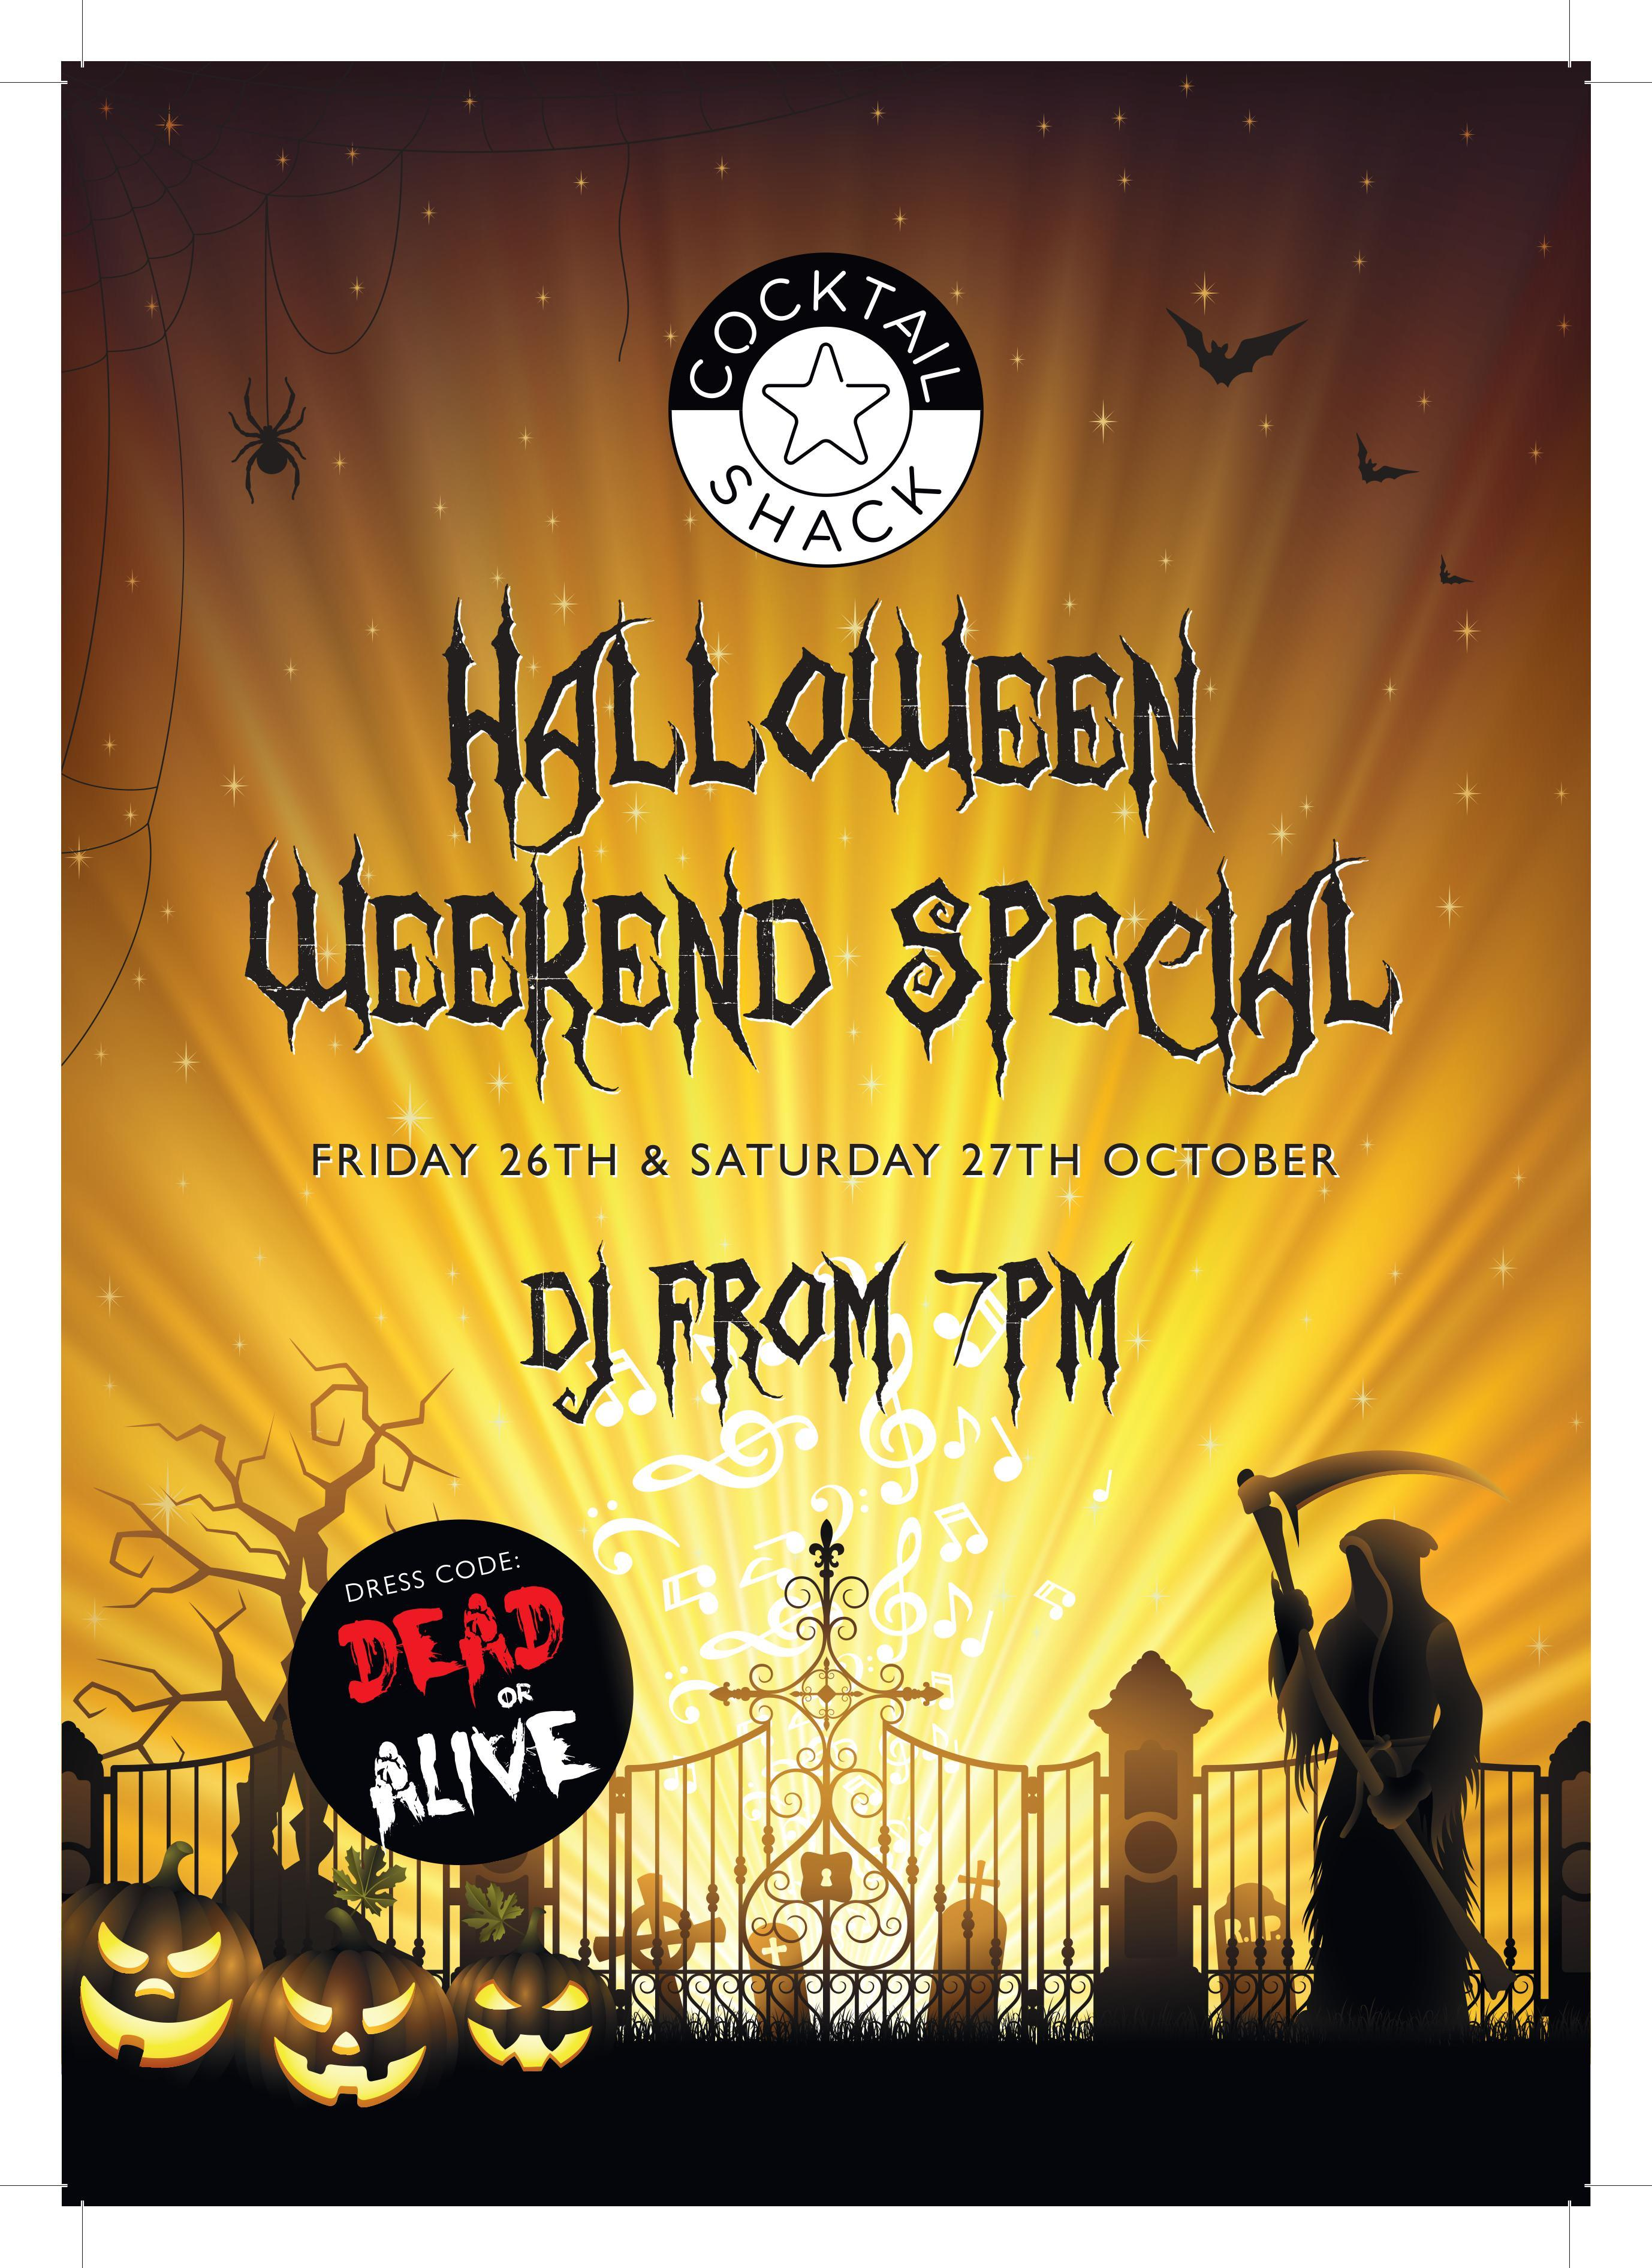 Halloween weekend special at The Cocktail Shack